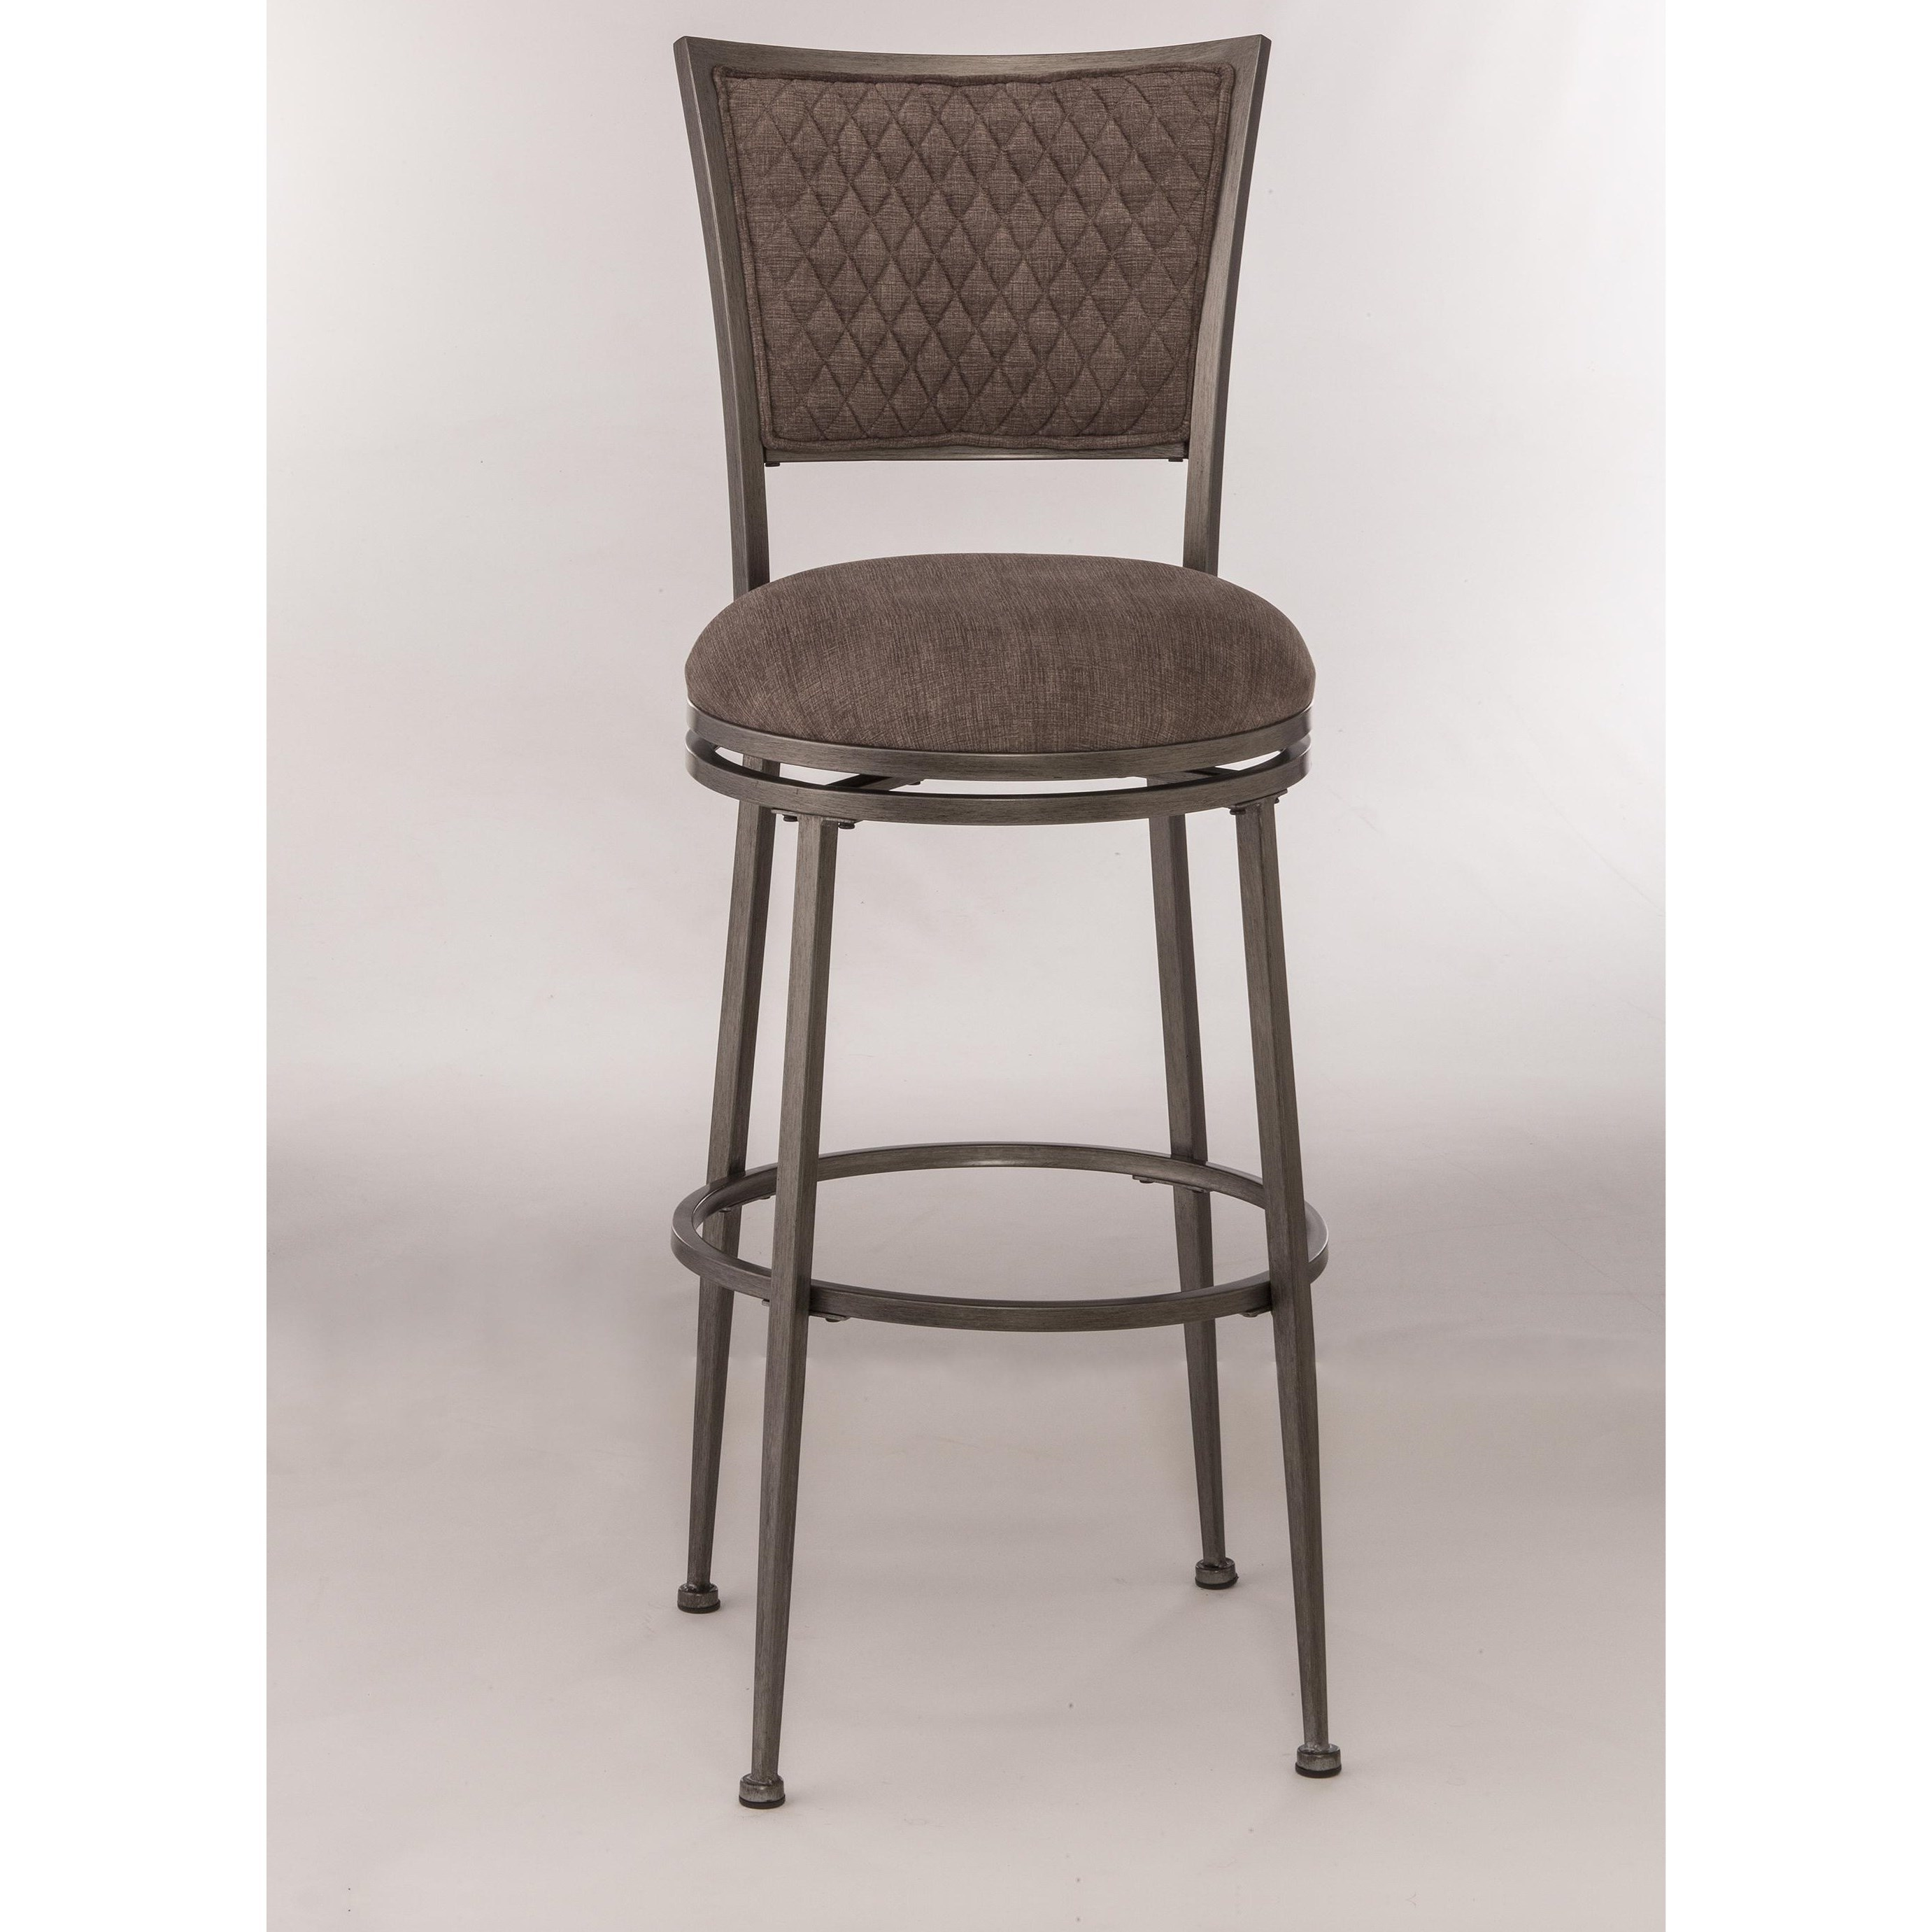 Hillsdale Metal Stools Swivel Bar Stool - Item Number: 5937-831